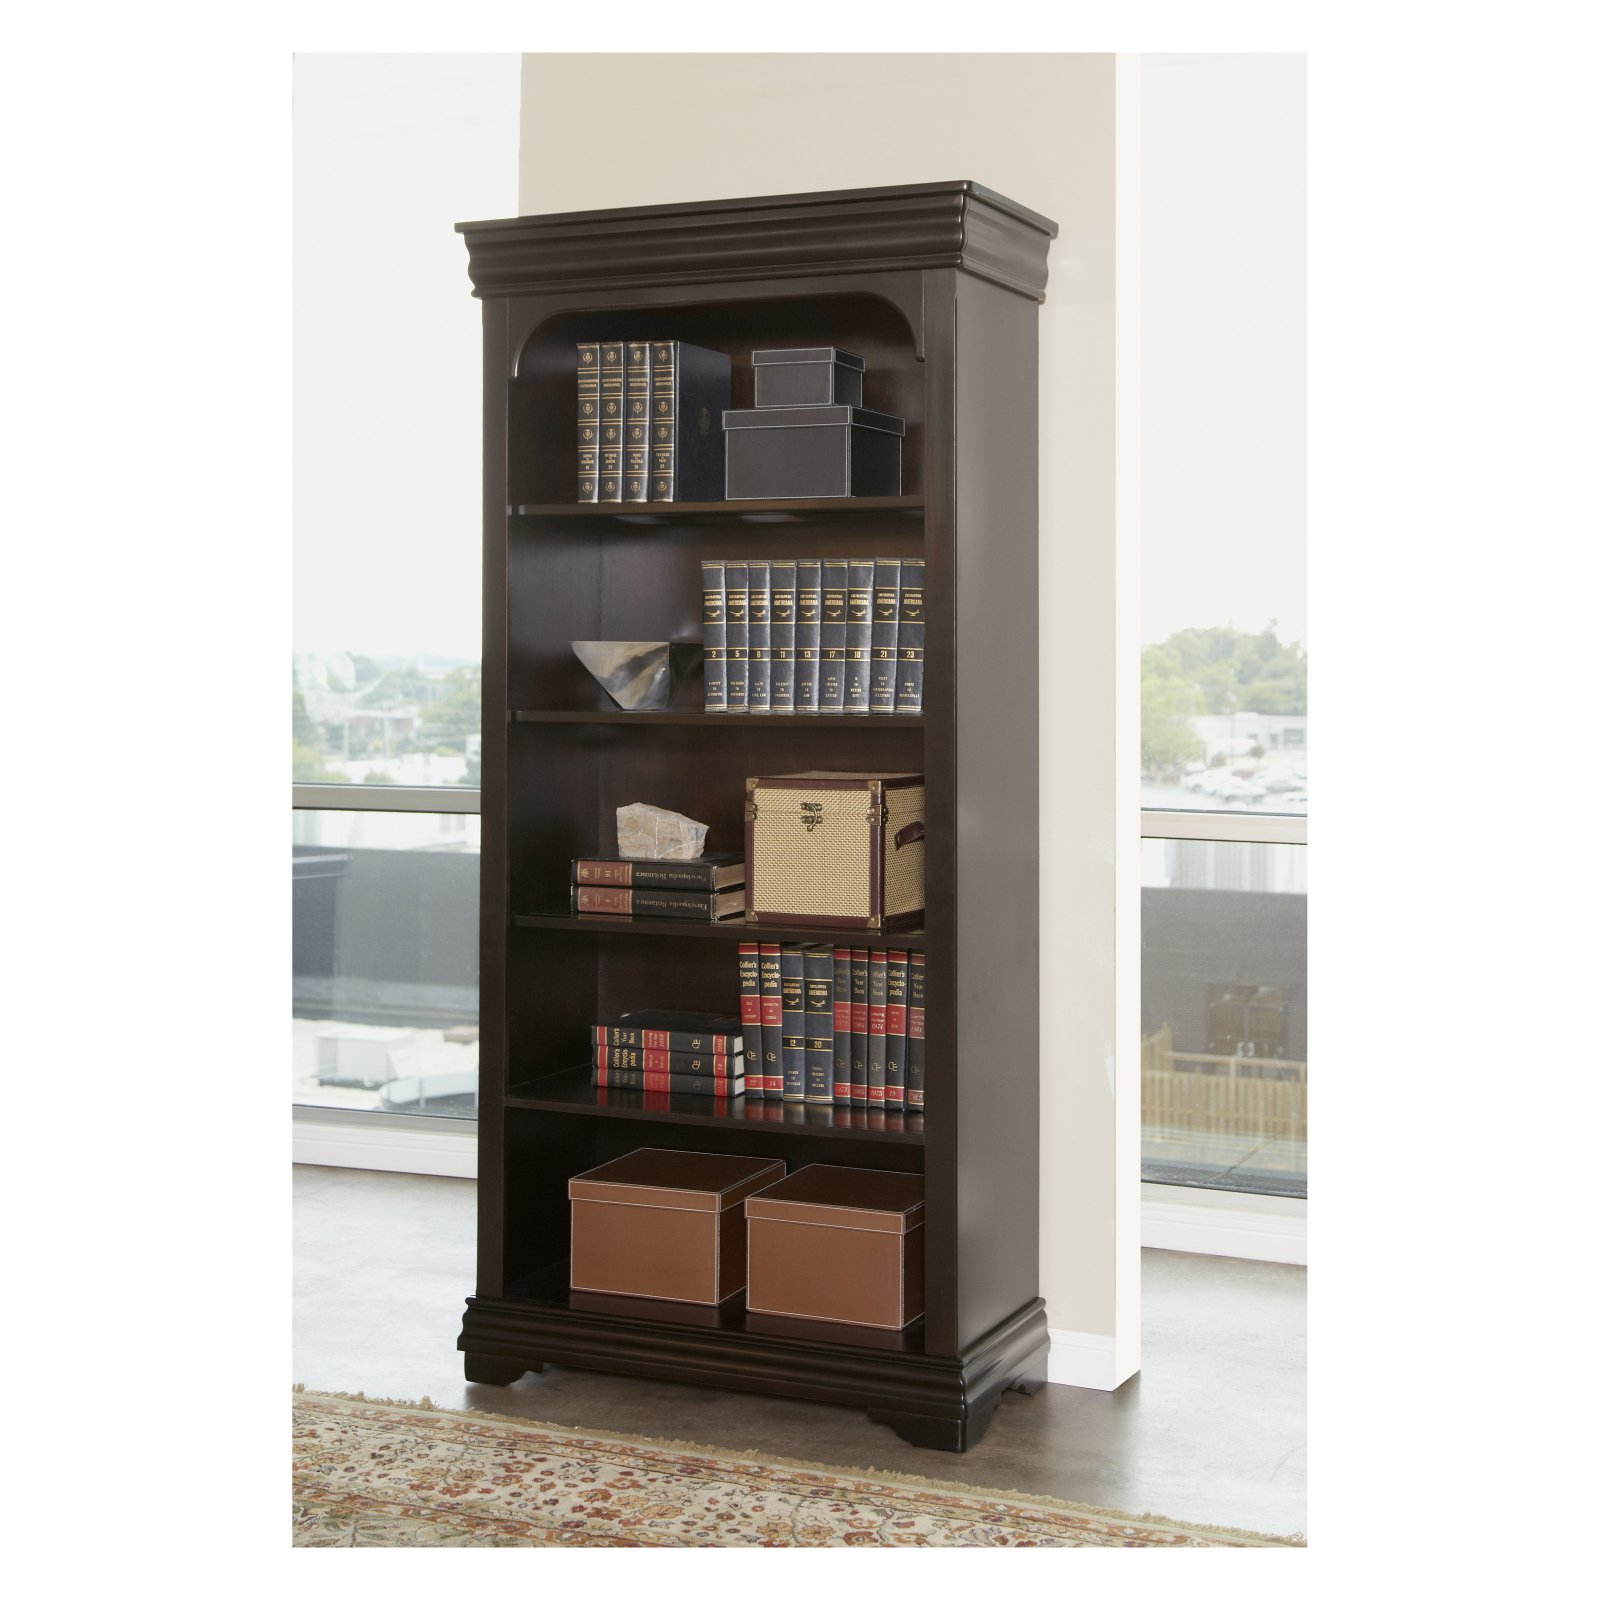 Martin Home Furnishings Furniture Beaumont Open Bookcase - 36 in. Wide